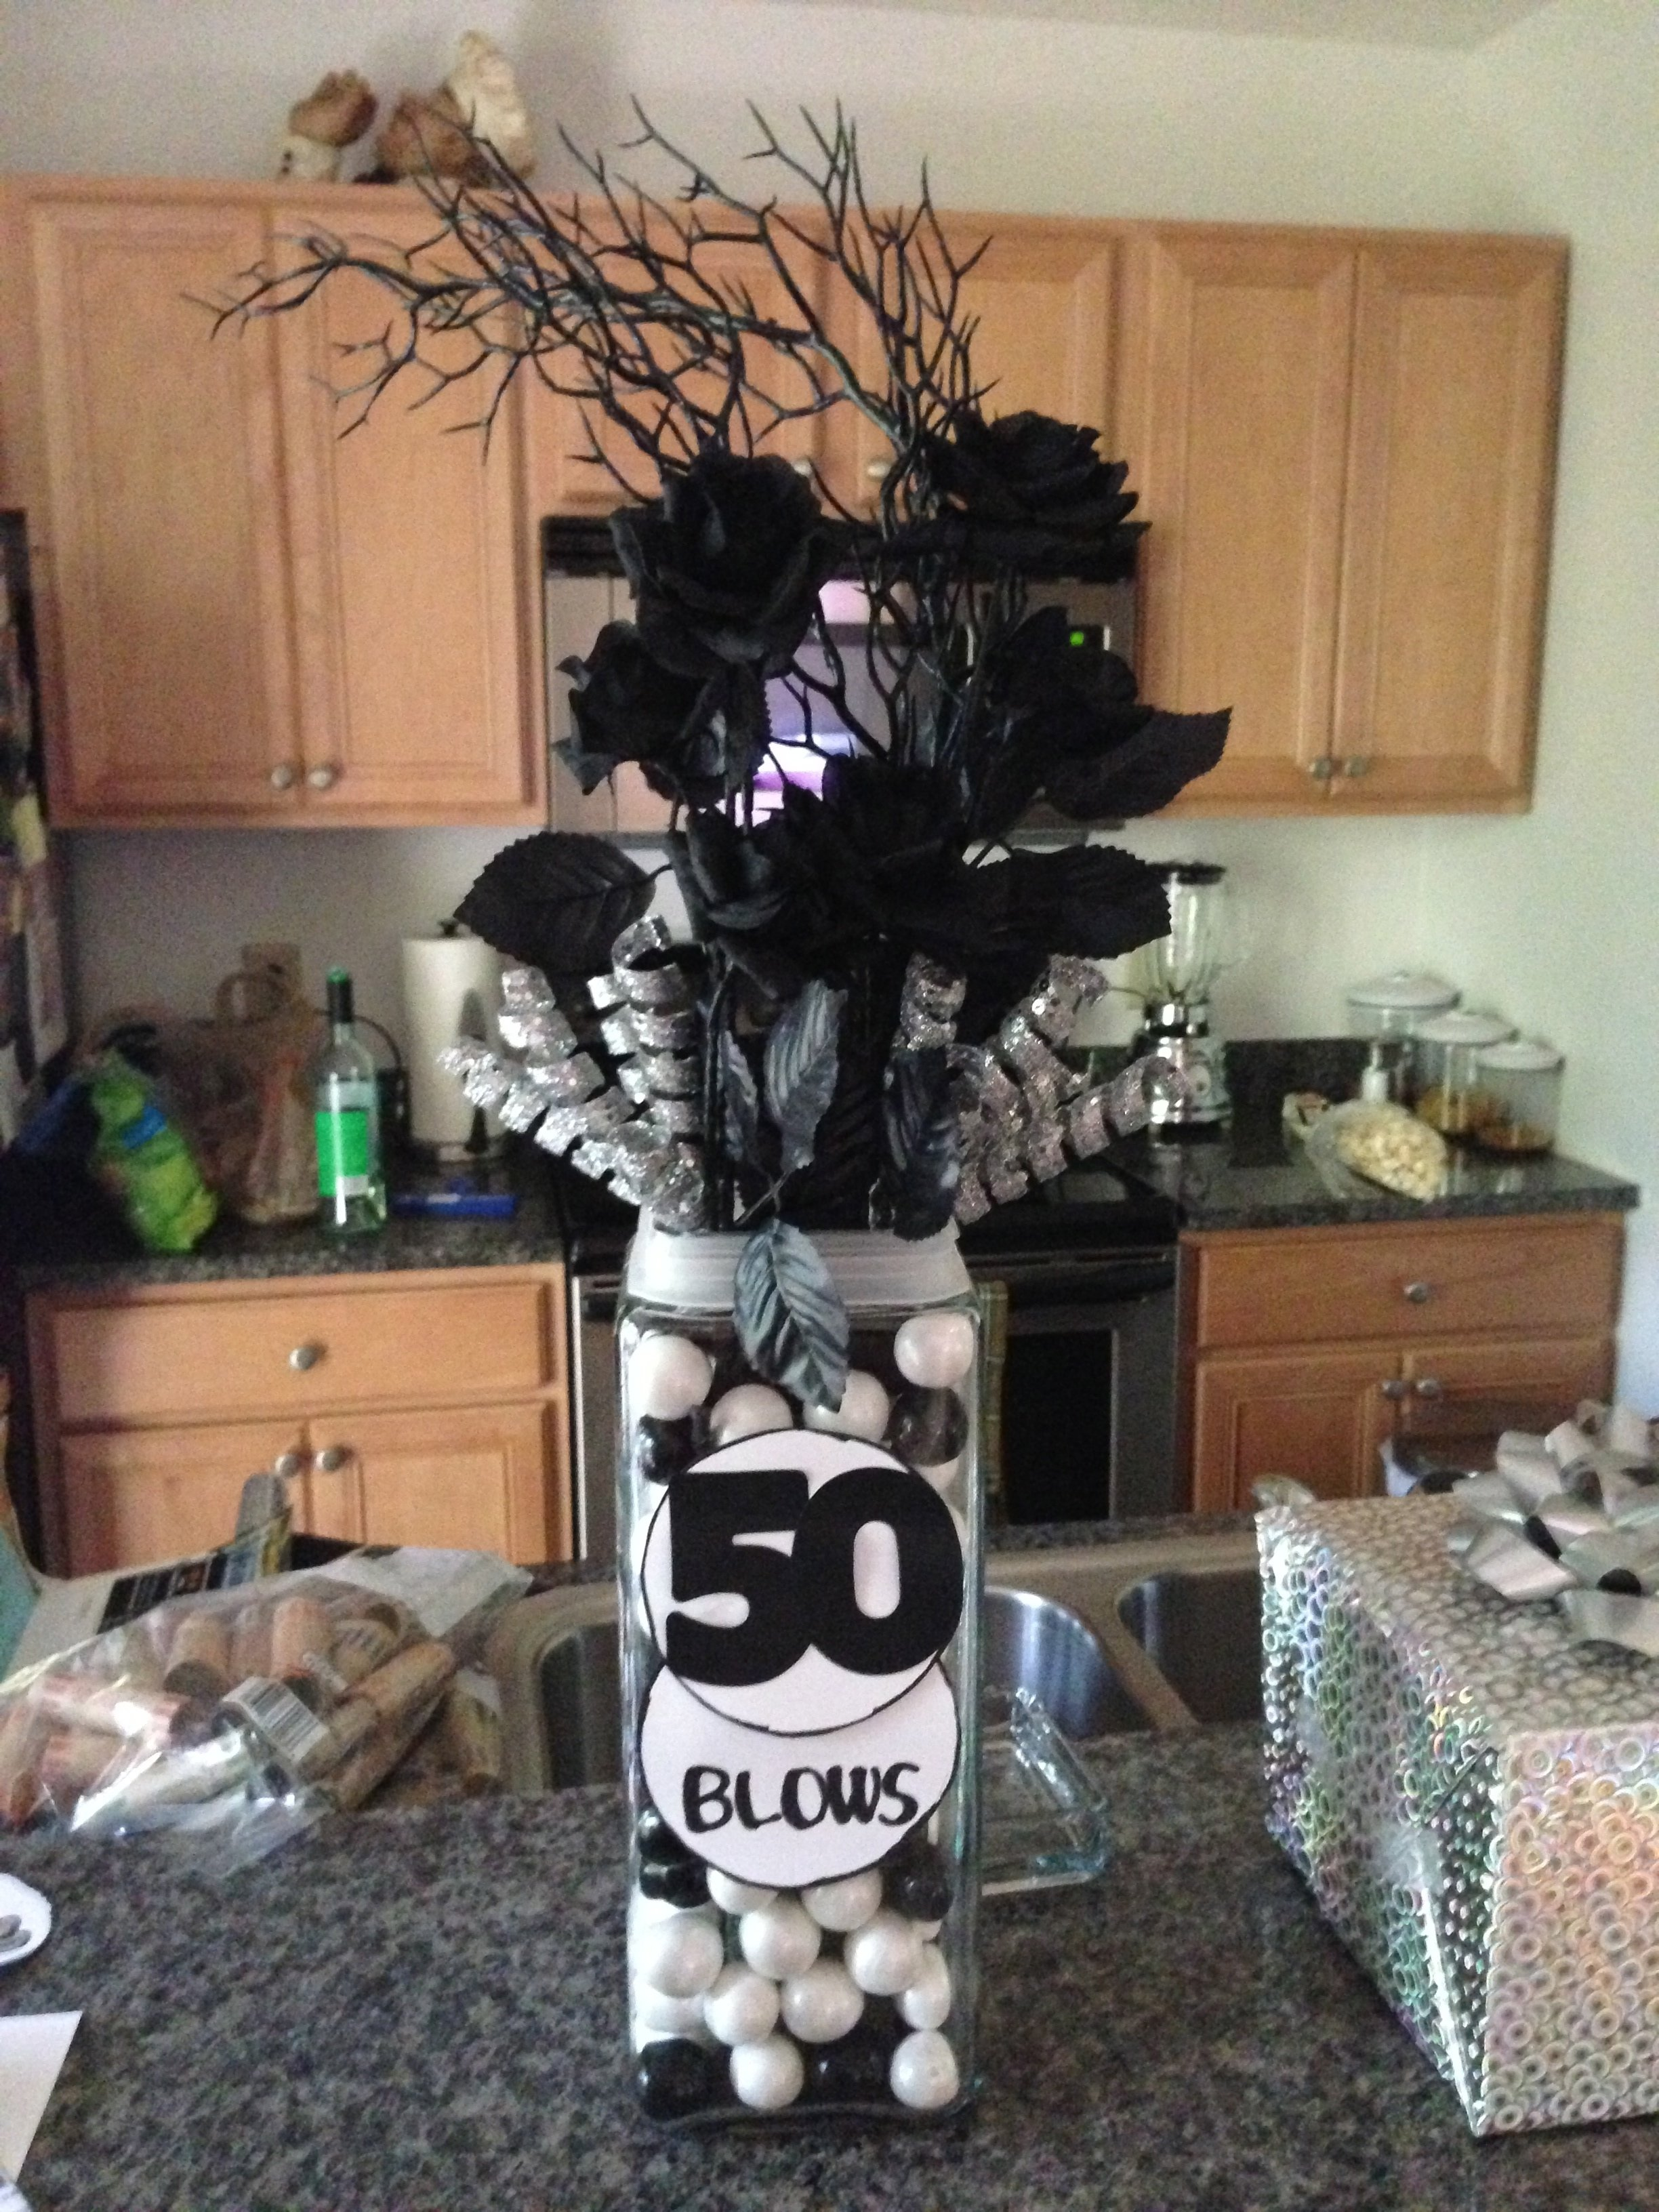 10 Most Recommended 50 Birthday Party Ideas For Men My Version Of A 50th Centerpiece